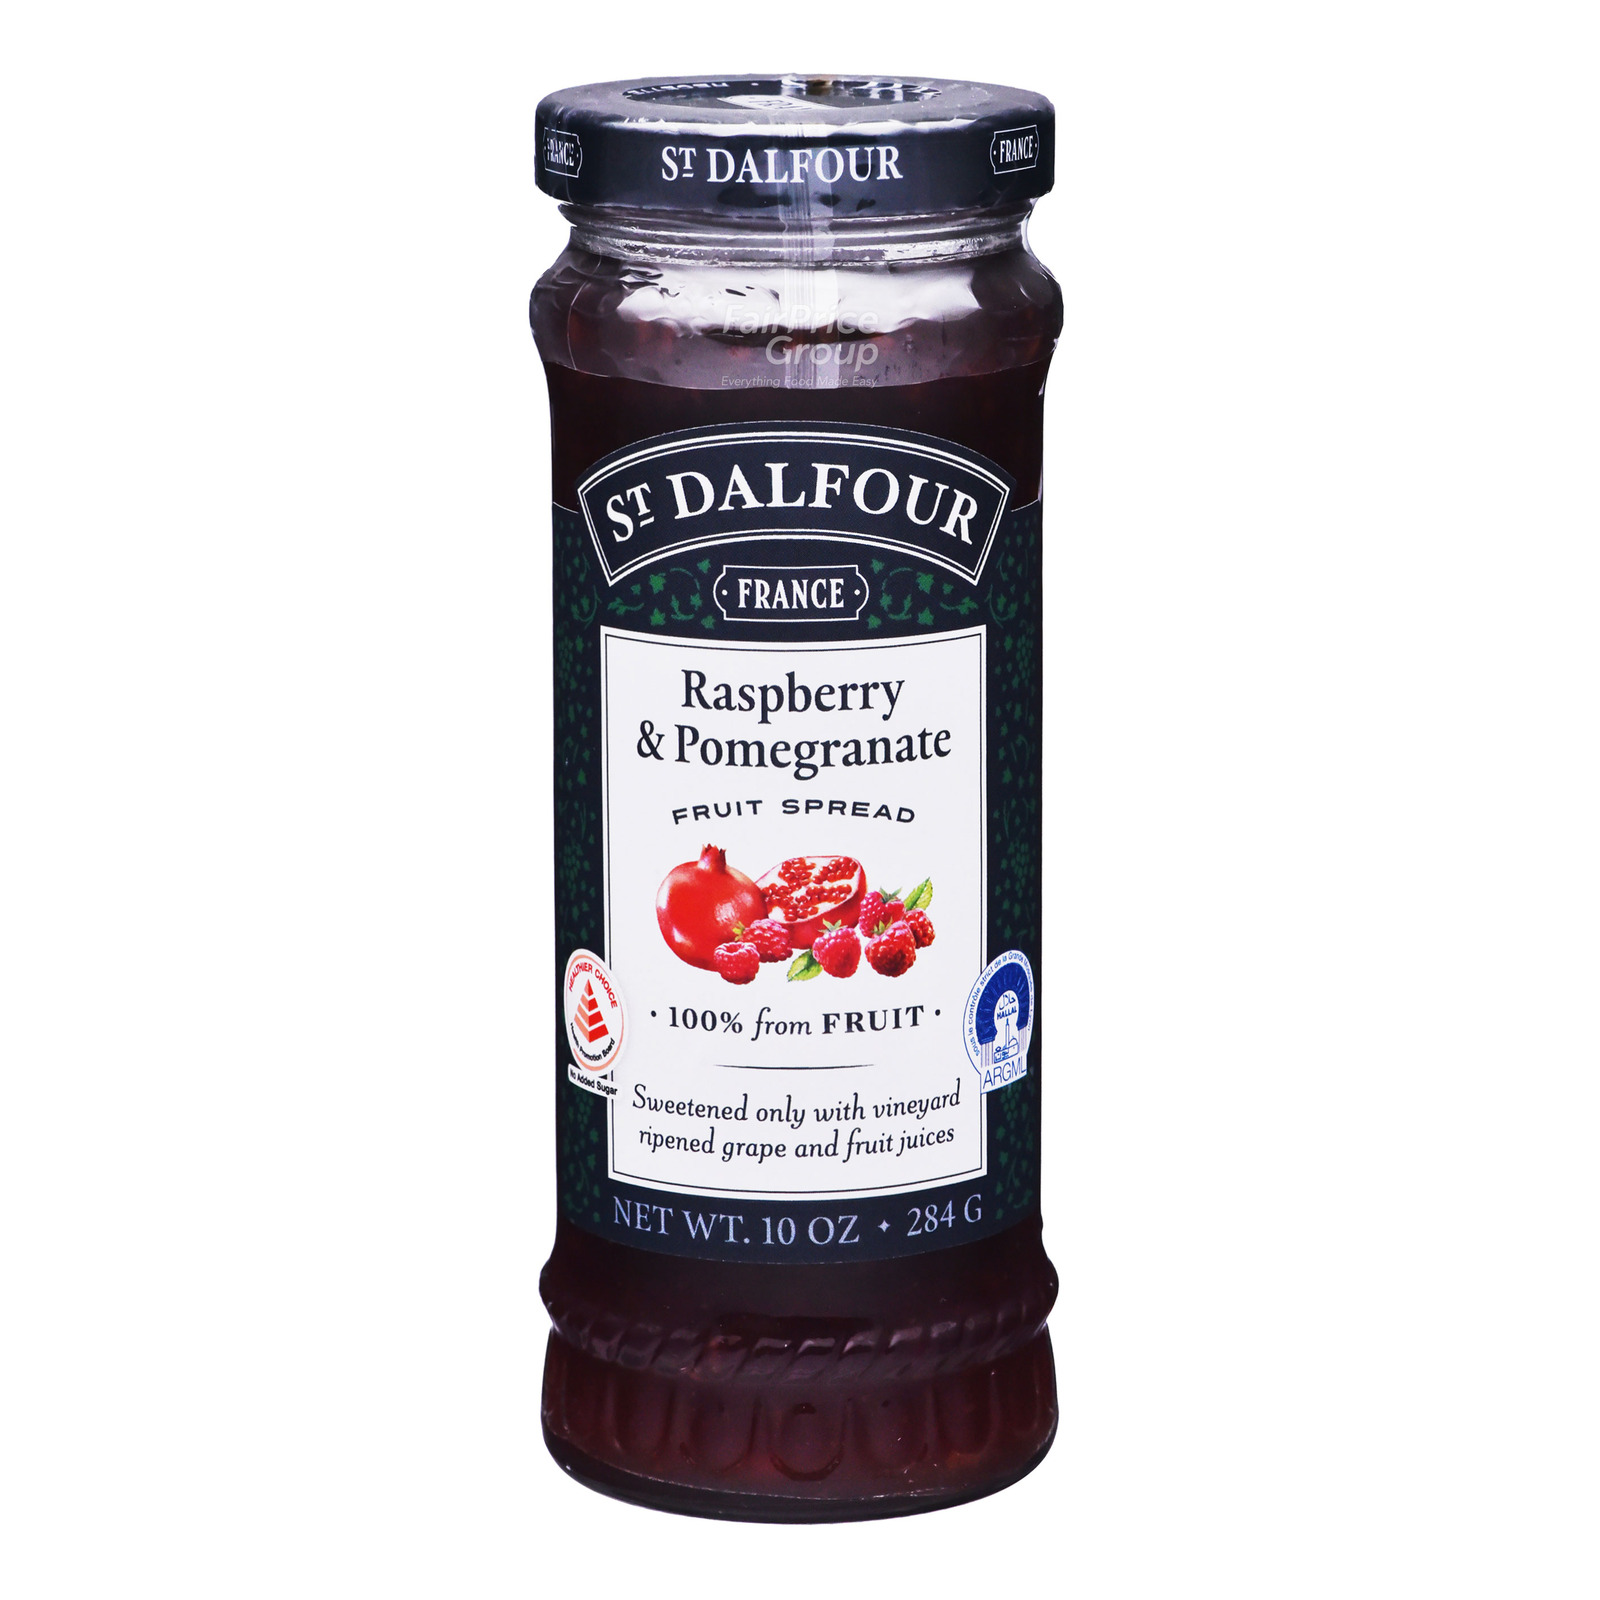 St.Dalfour Fruit Spread - Raspberry With Pomegranate